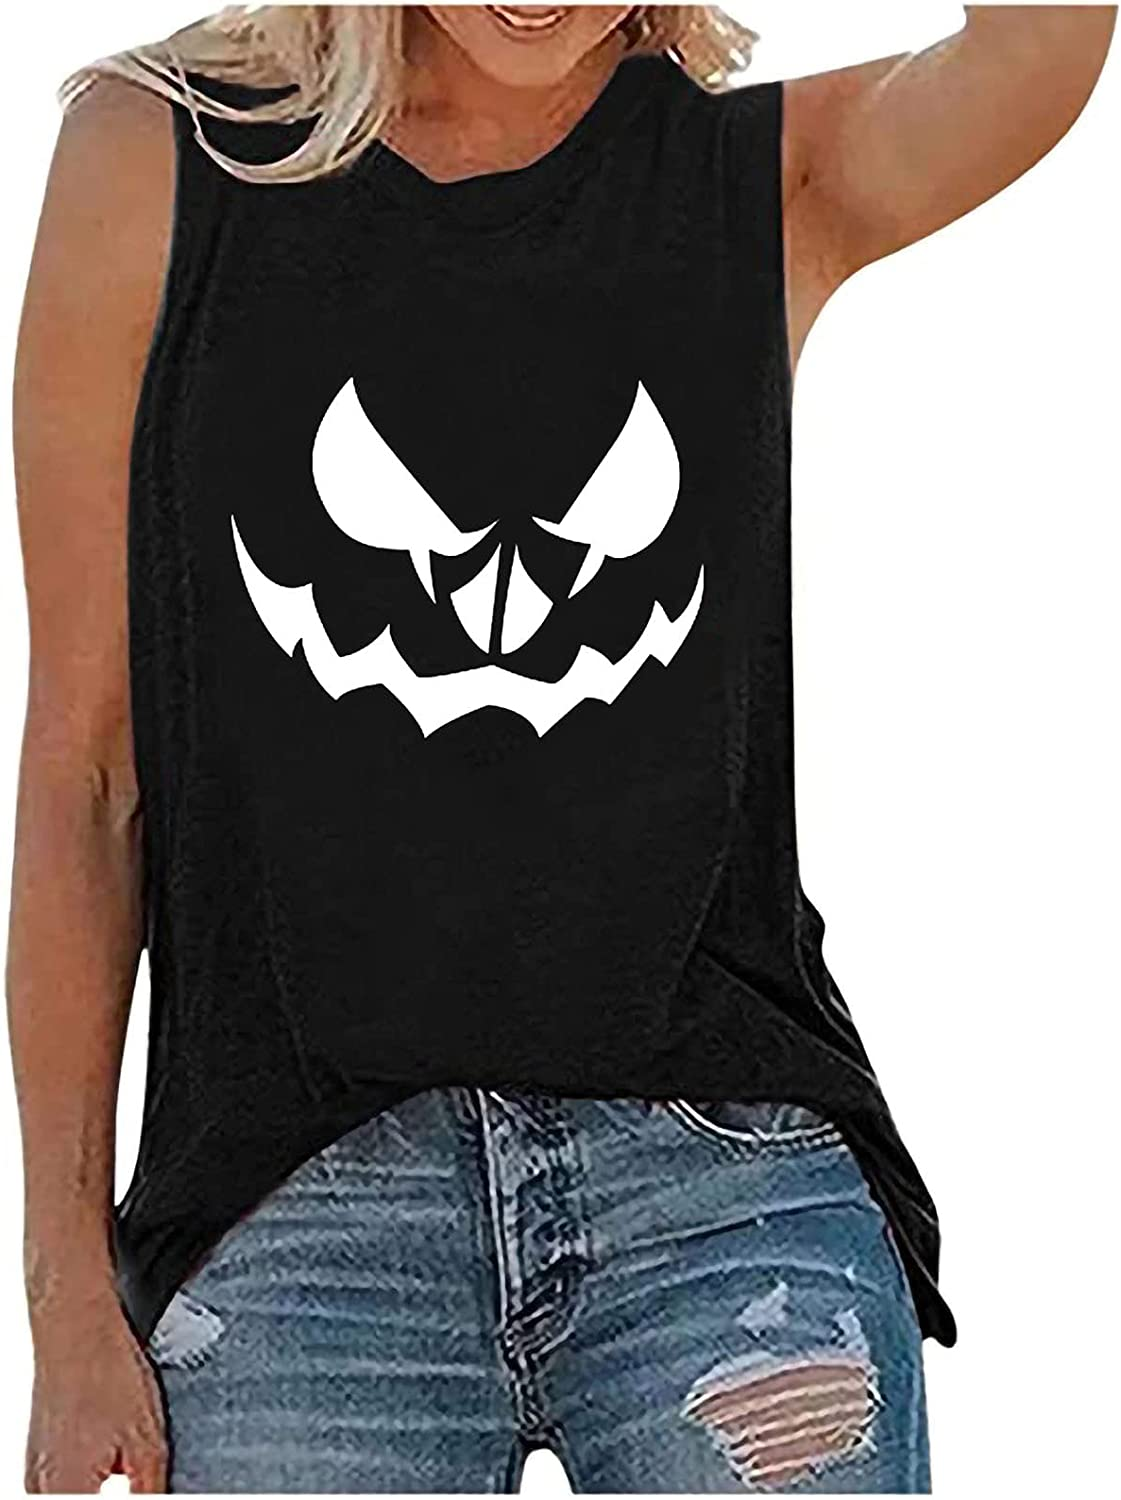 Women Summer Tops Women's Blouse Halloween Loose-Fitting Vest Funny Print Round Neck Blouse